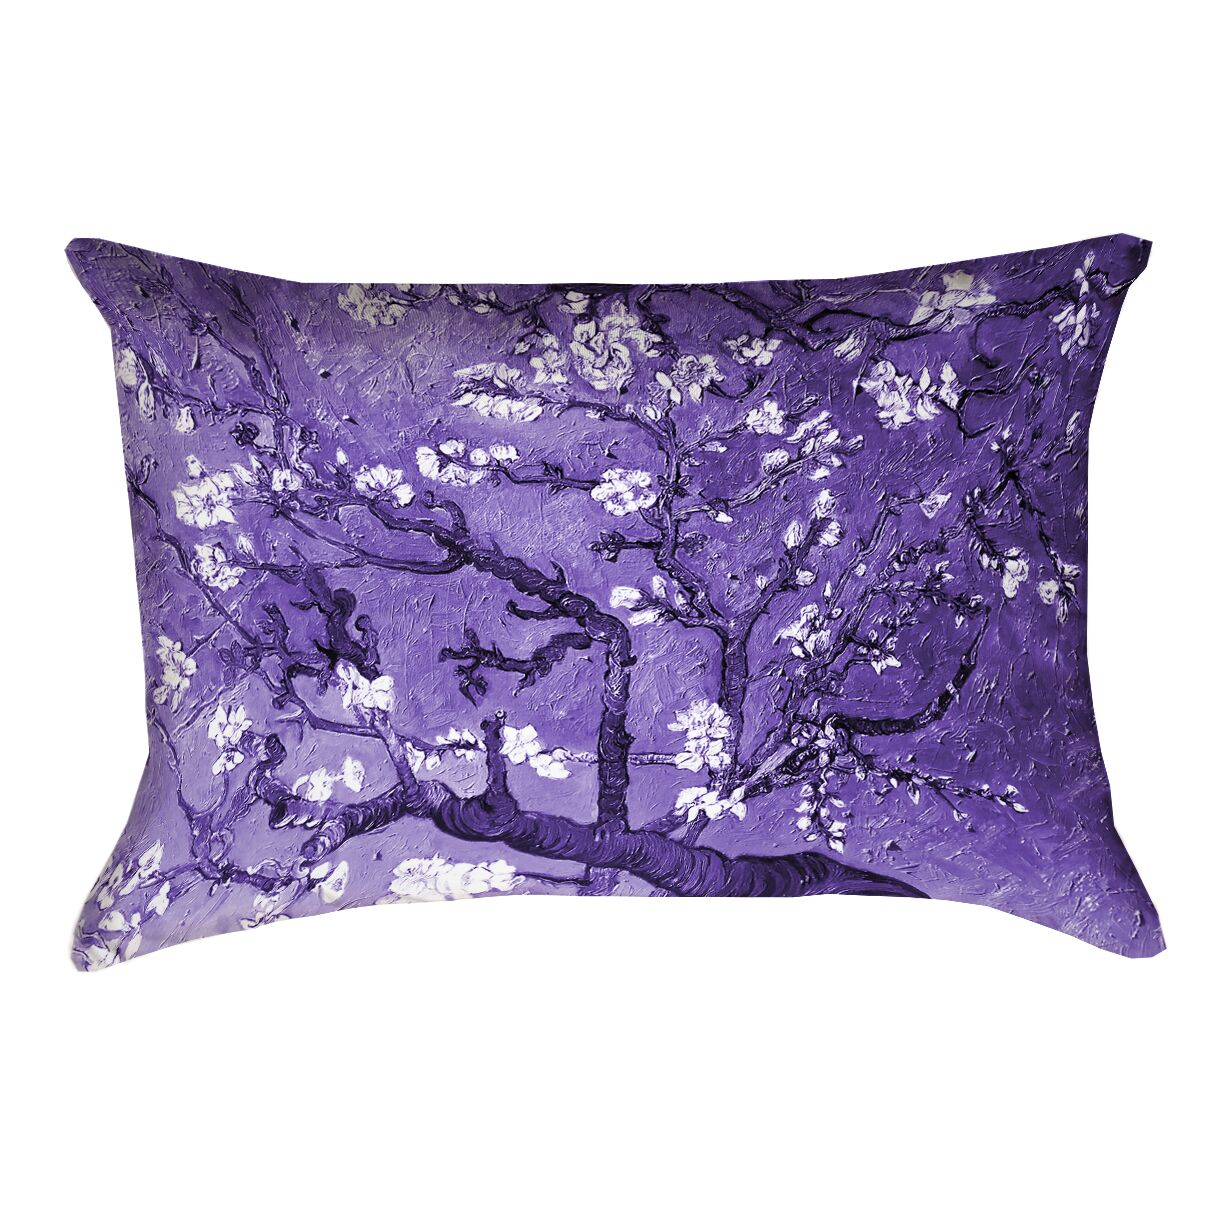 Lei Almond Blossom Pillow Cover with Zipper Color: Purple